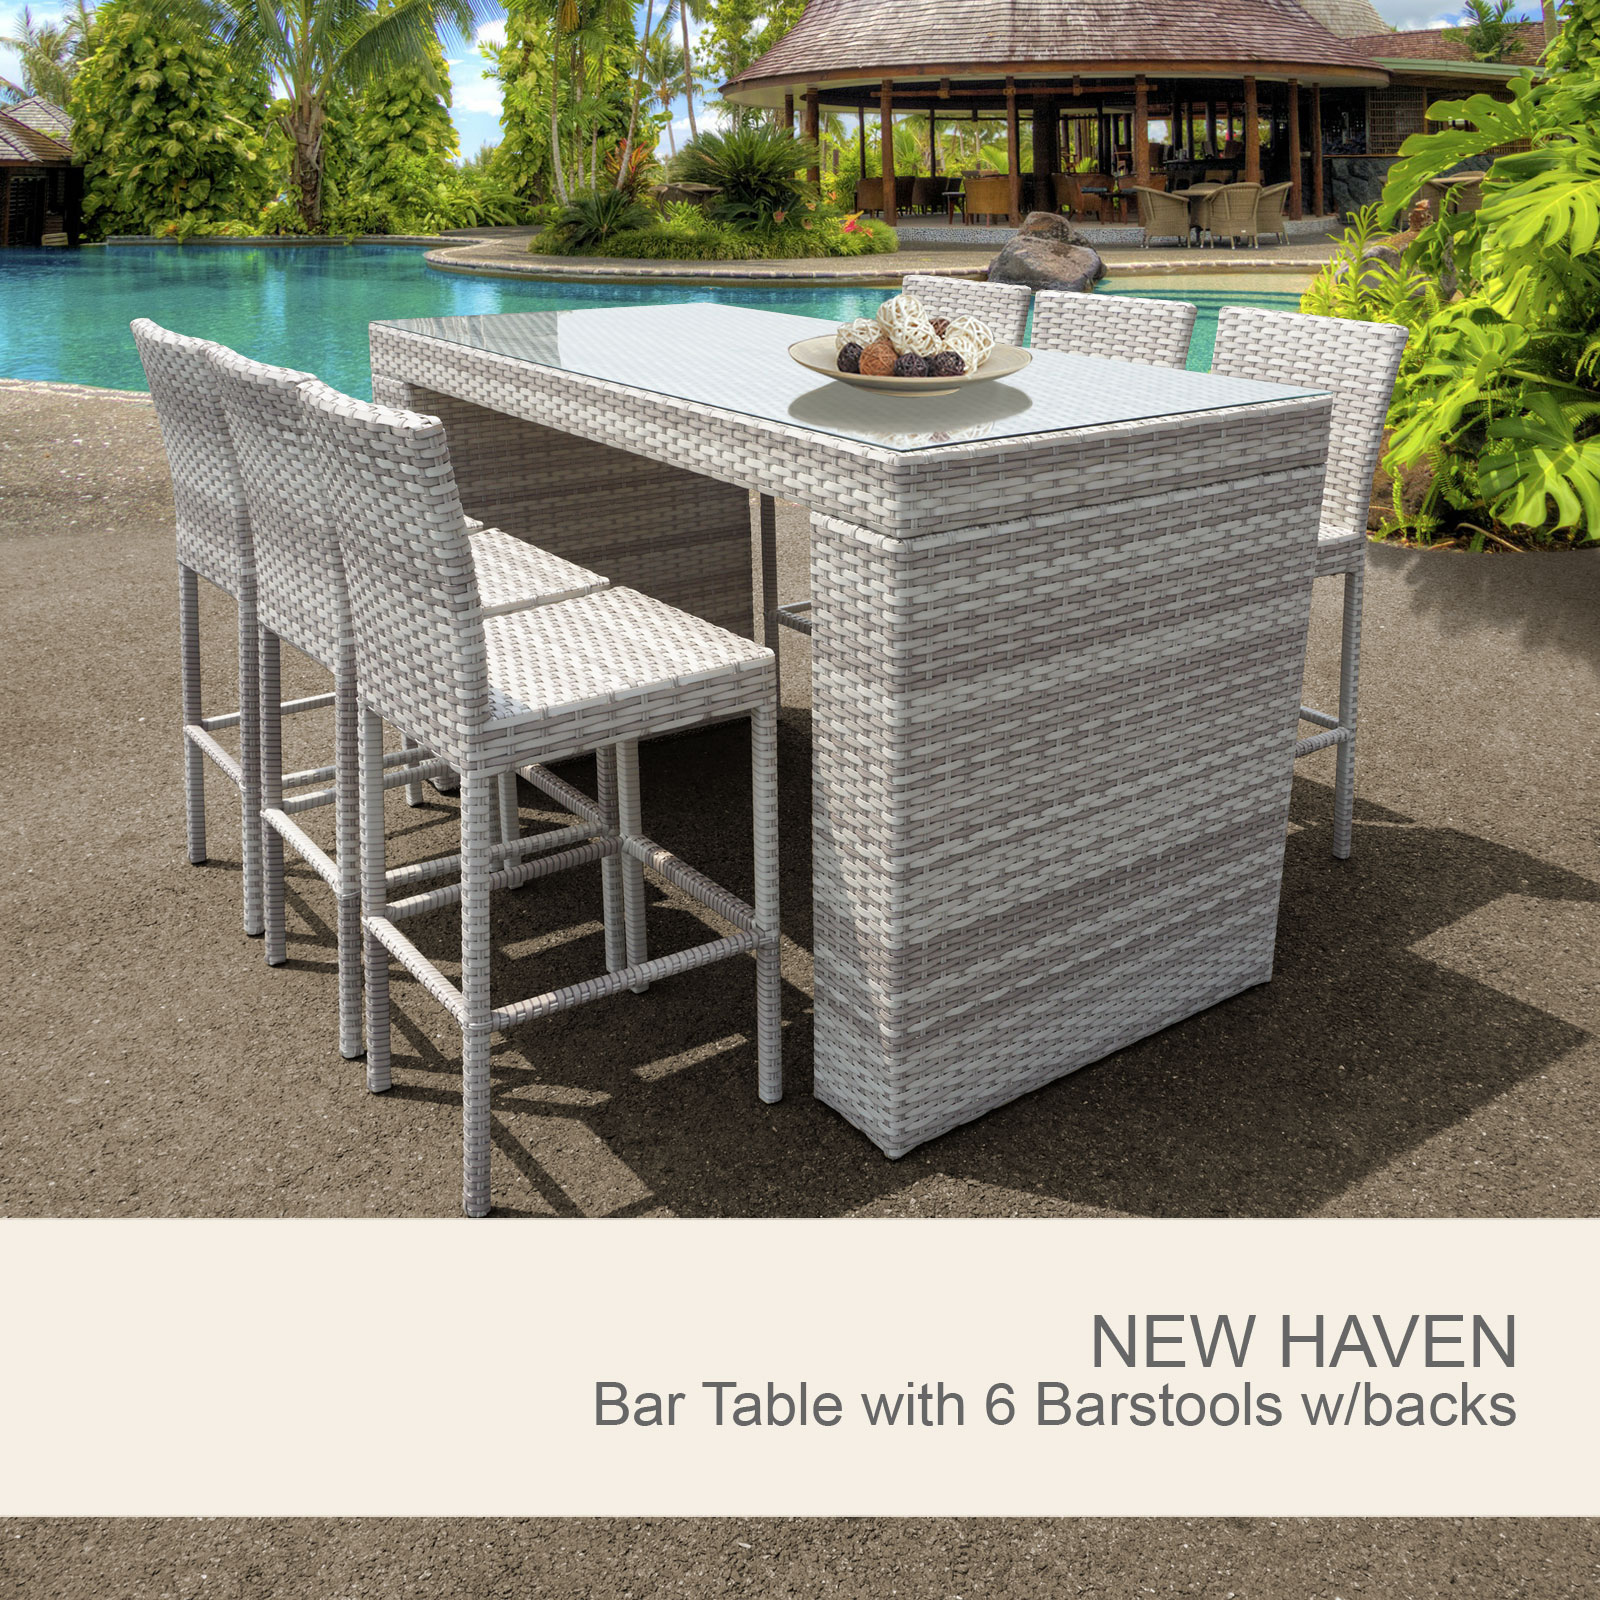 New Haven Bar Table Set With Barstools 7 Piece Outdoor Wicker Patio ...